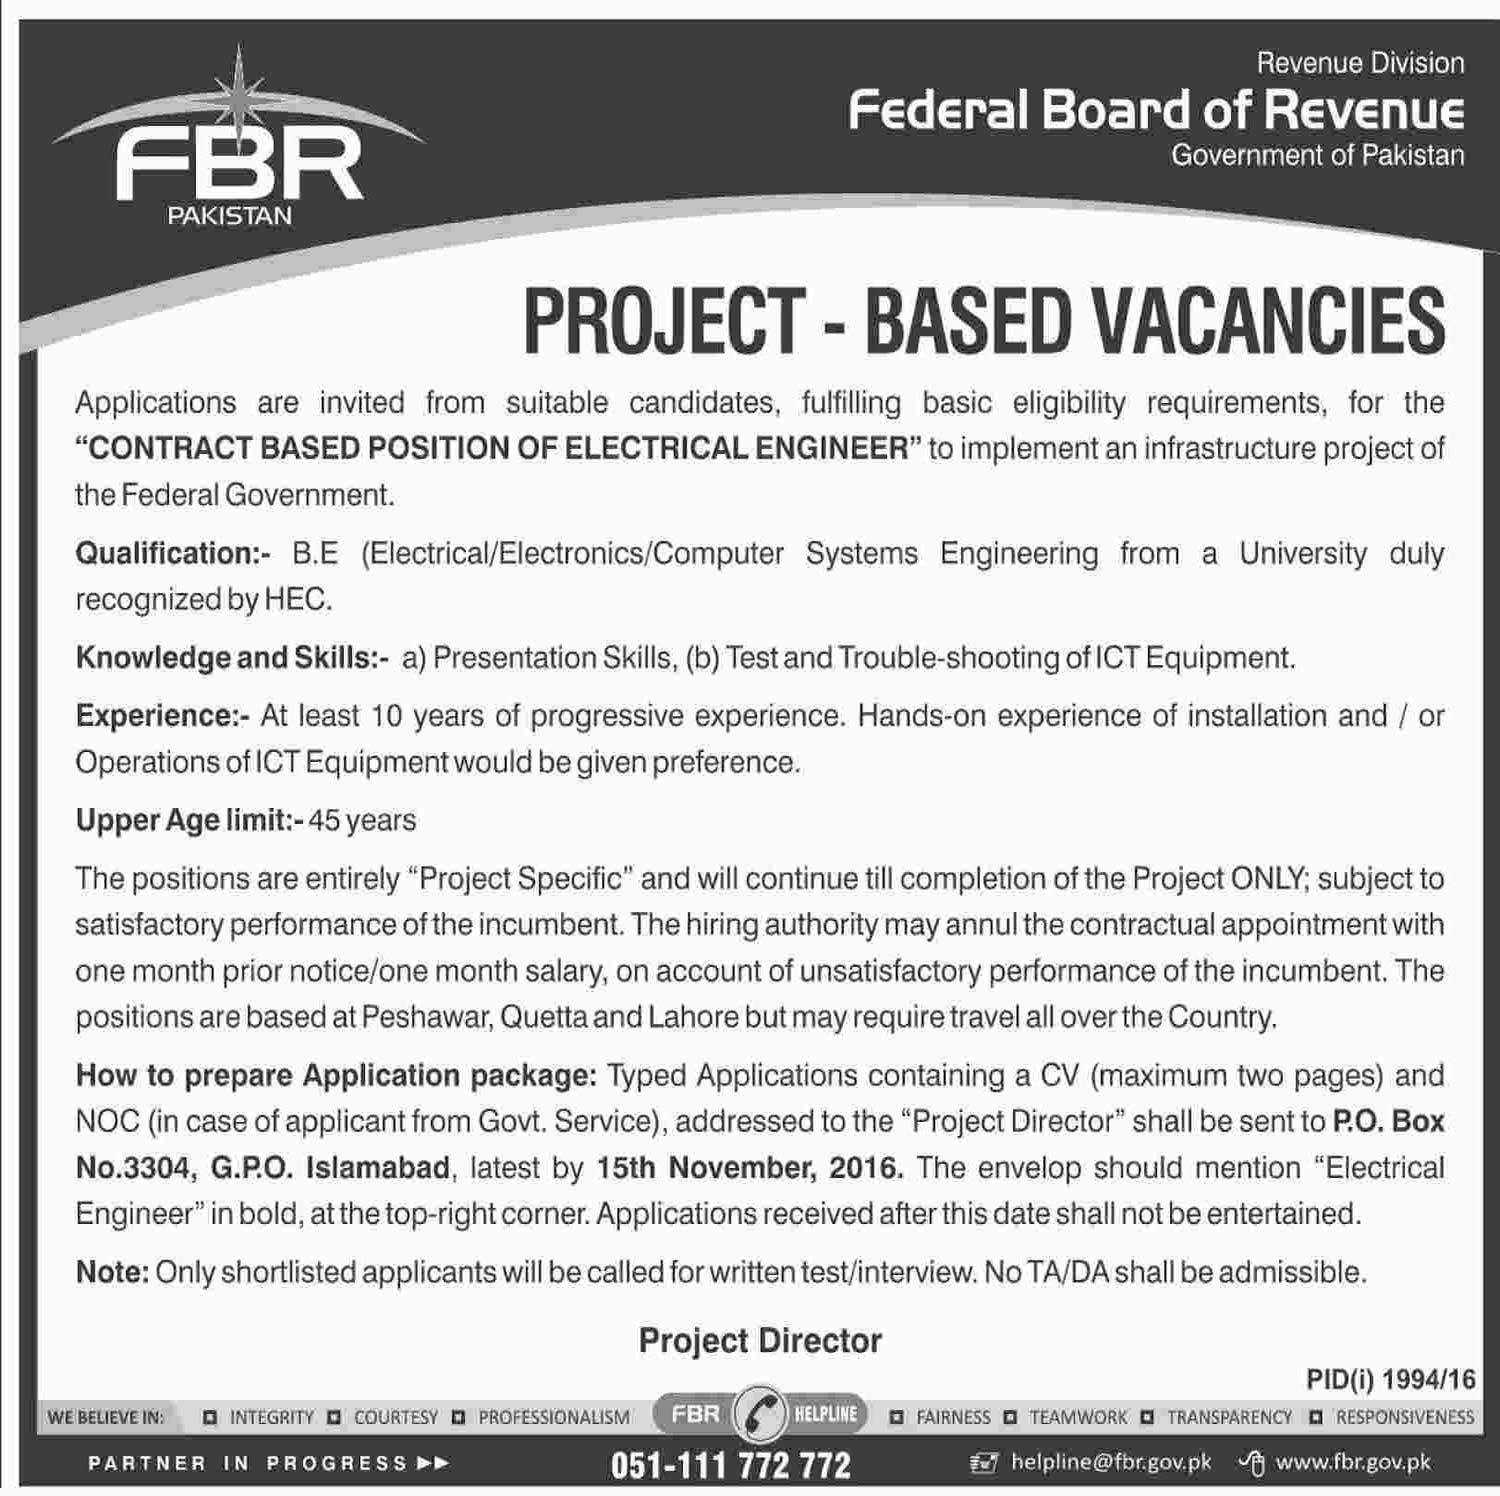 Govt Jobs in Federal Board of Revenue Islamabad